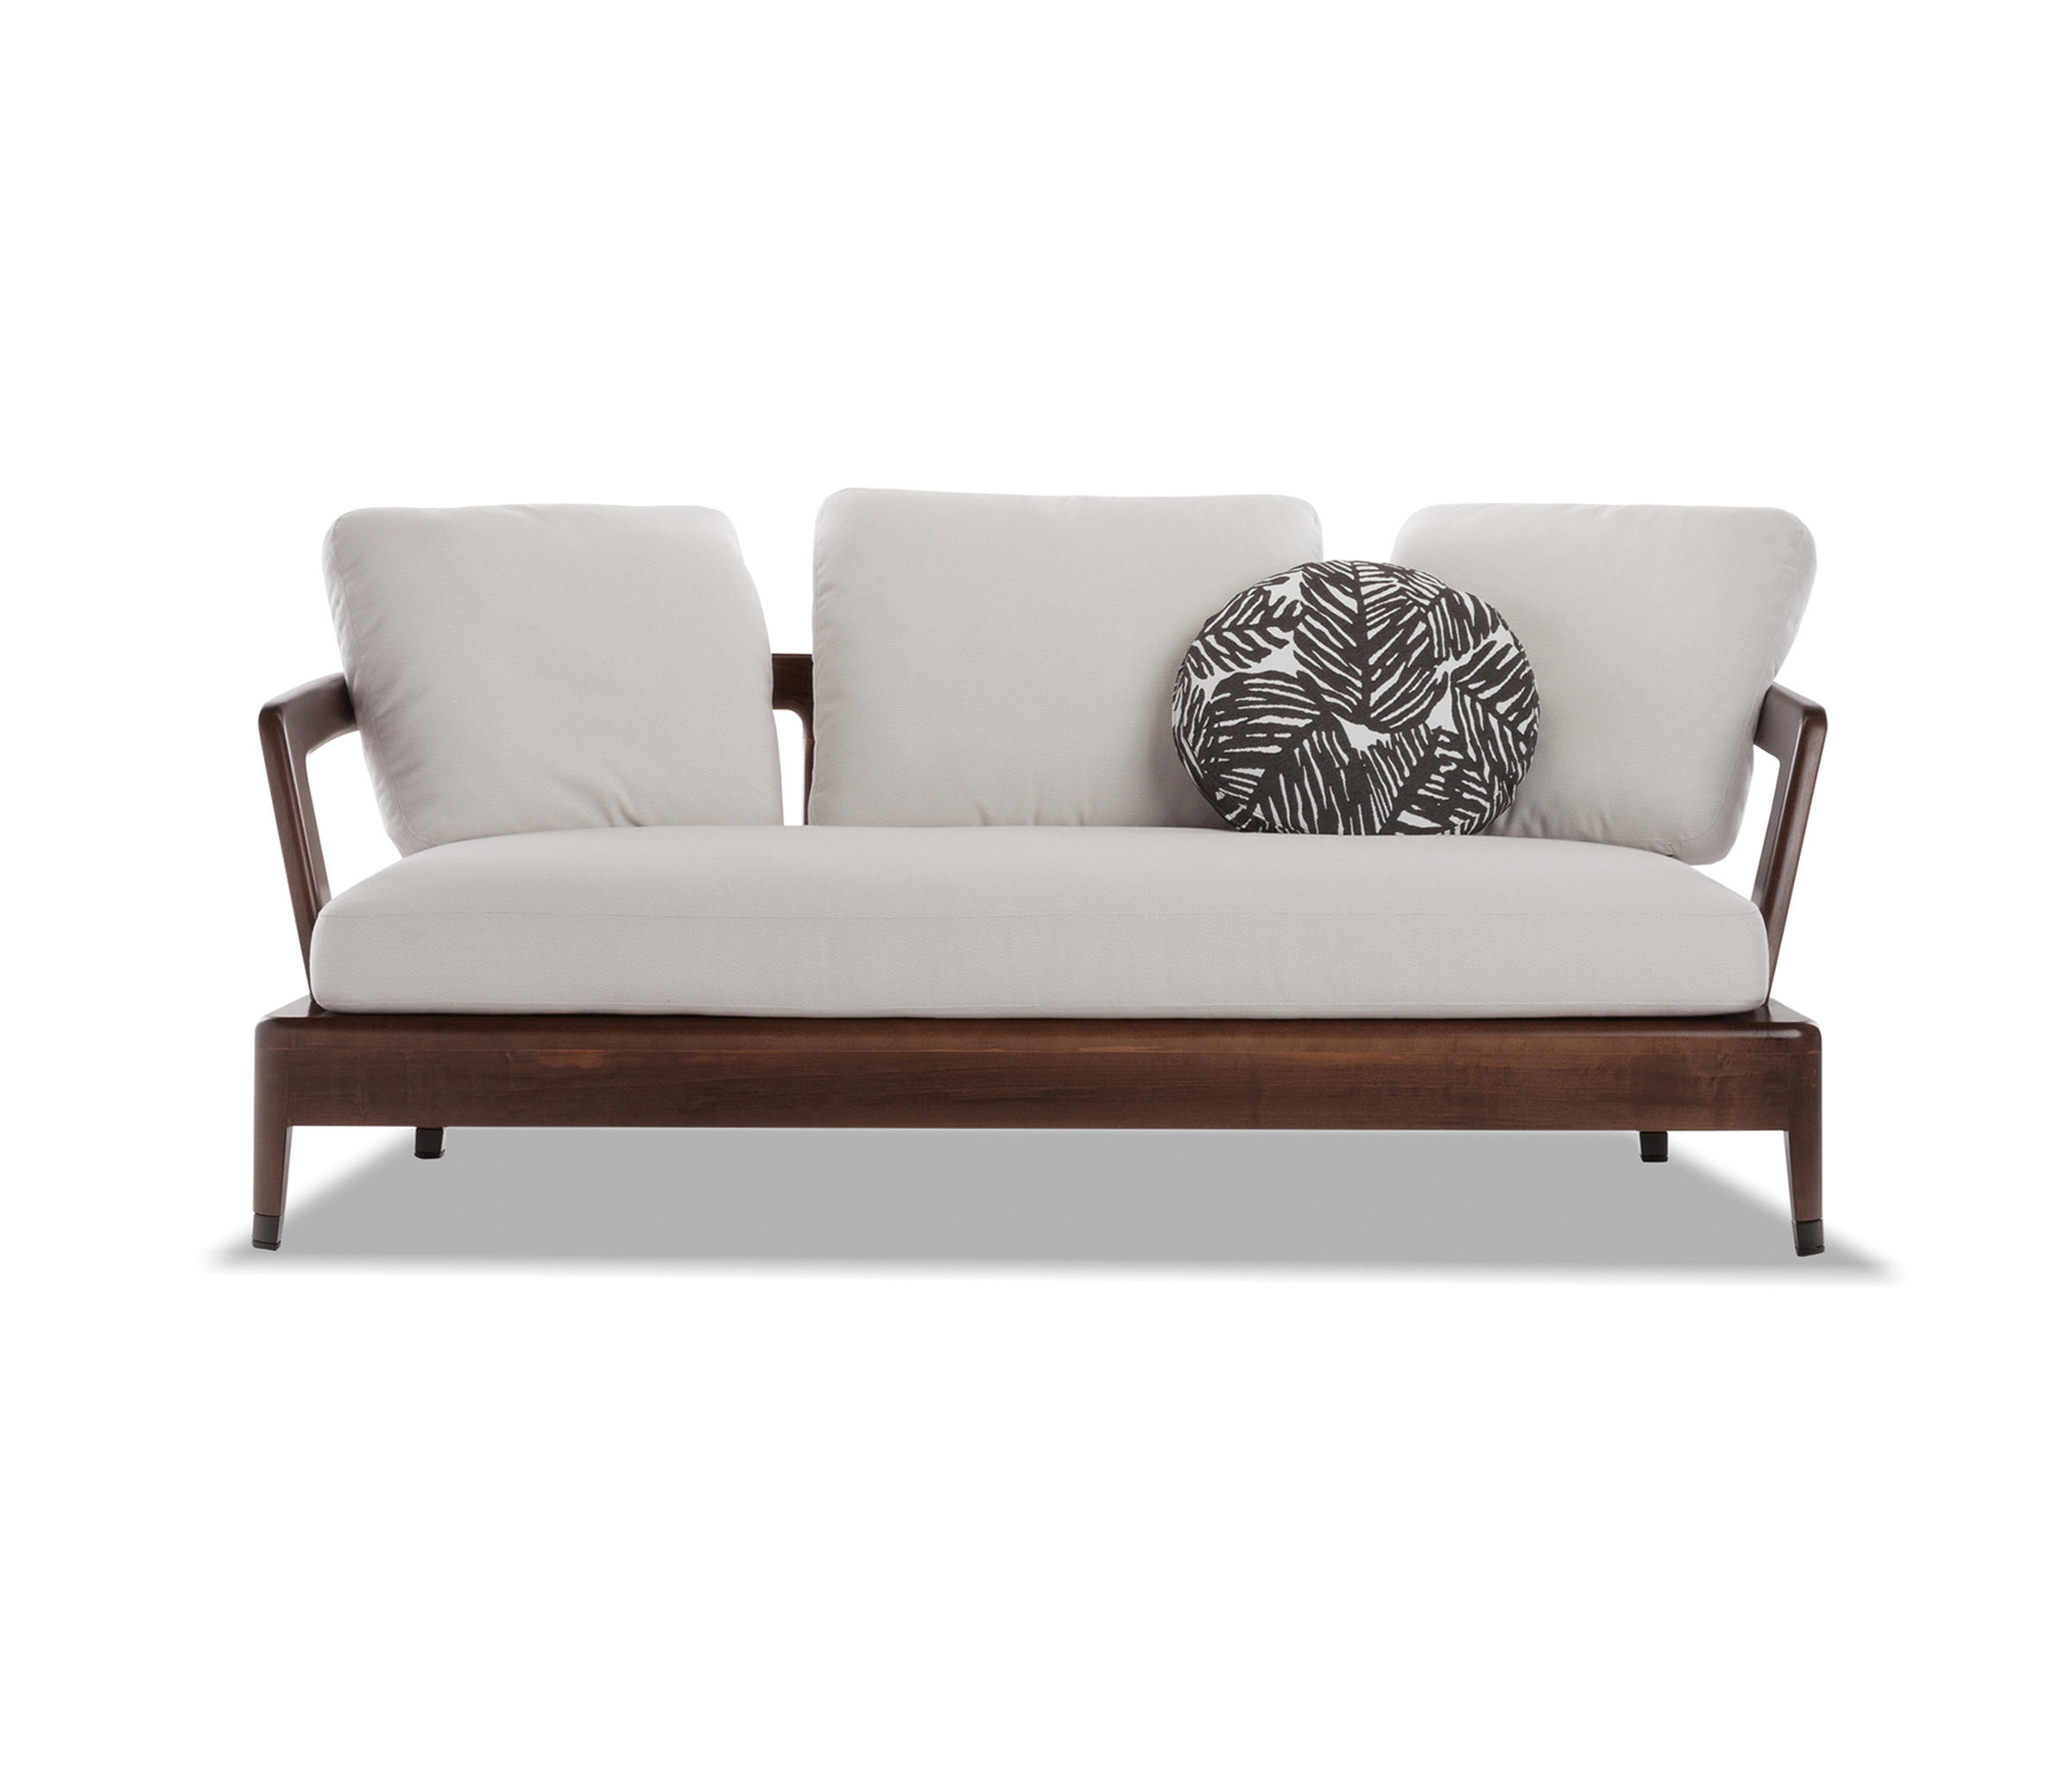 Virginia Outdoor Sofa Garden Sofas From Minotti Architonic